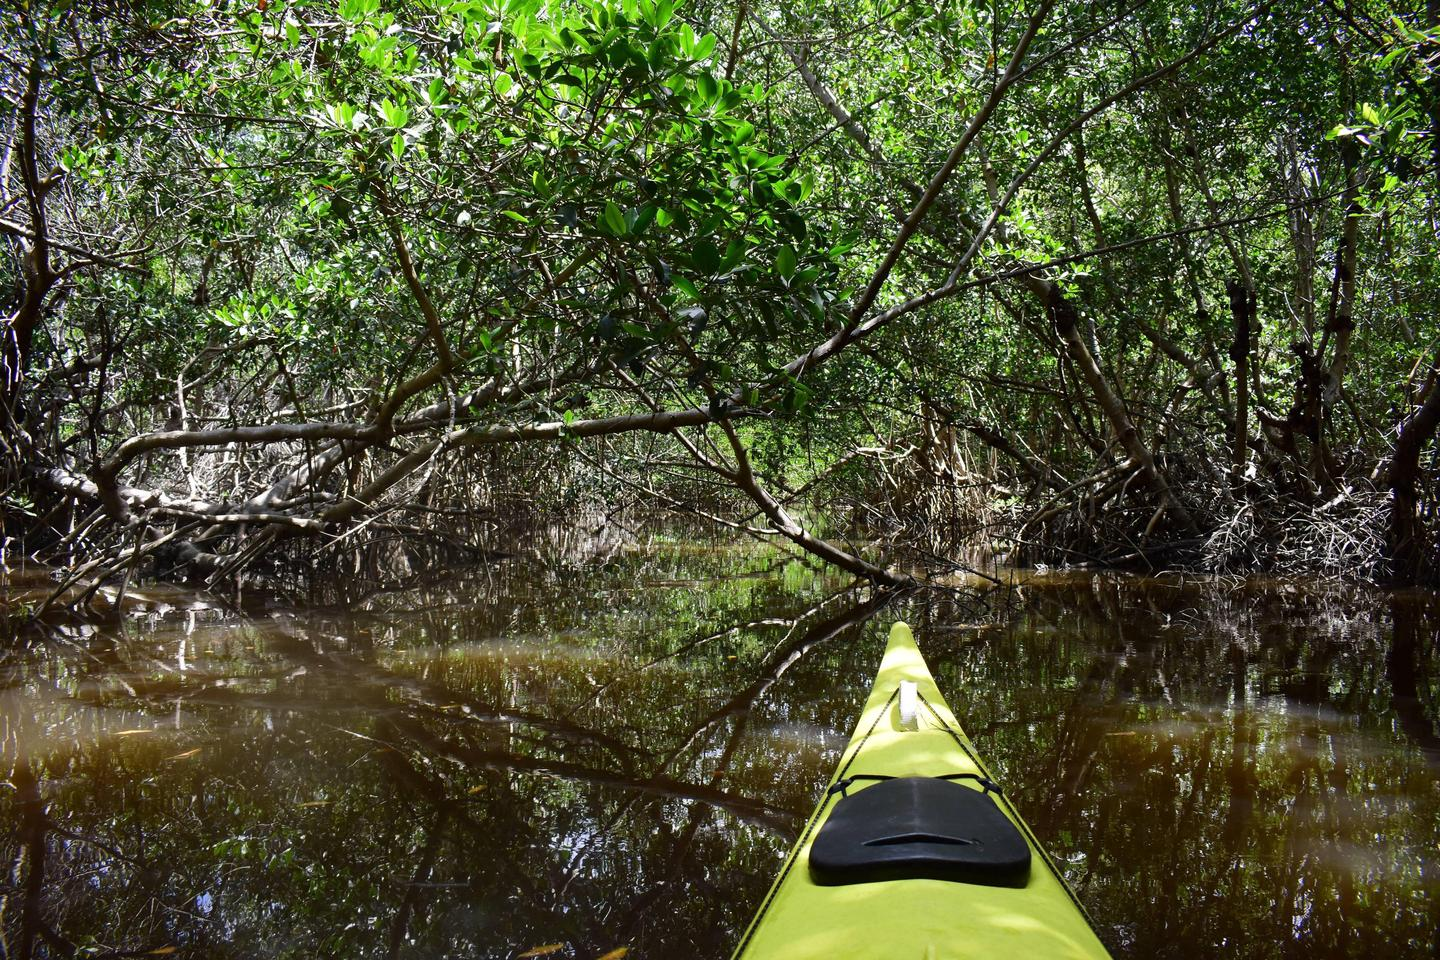 A yellow kayak paddles through a mangrove tunnel with numerous branches overheadPaddling a mangrove tunnel